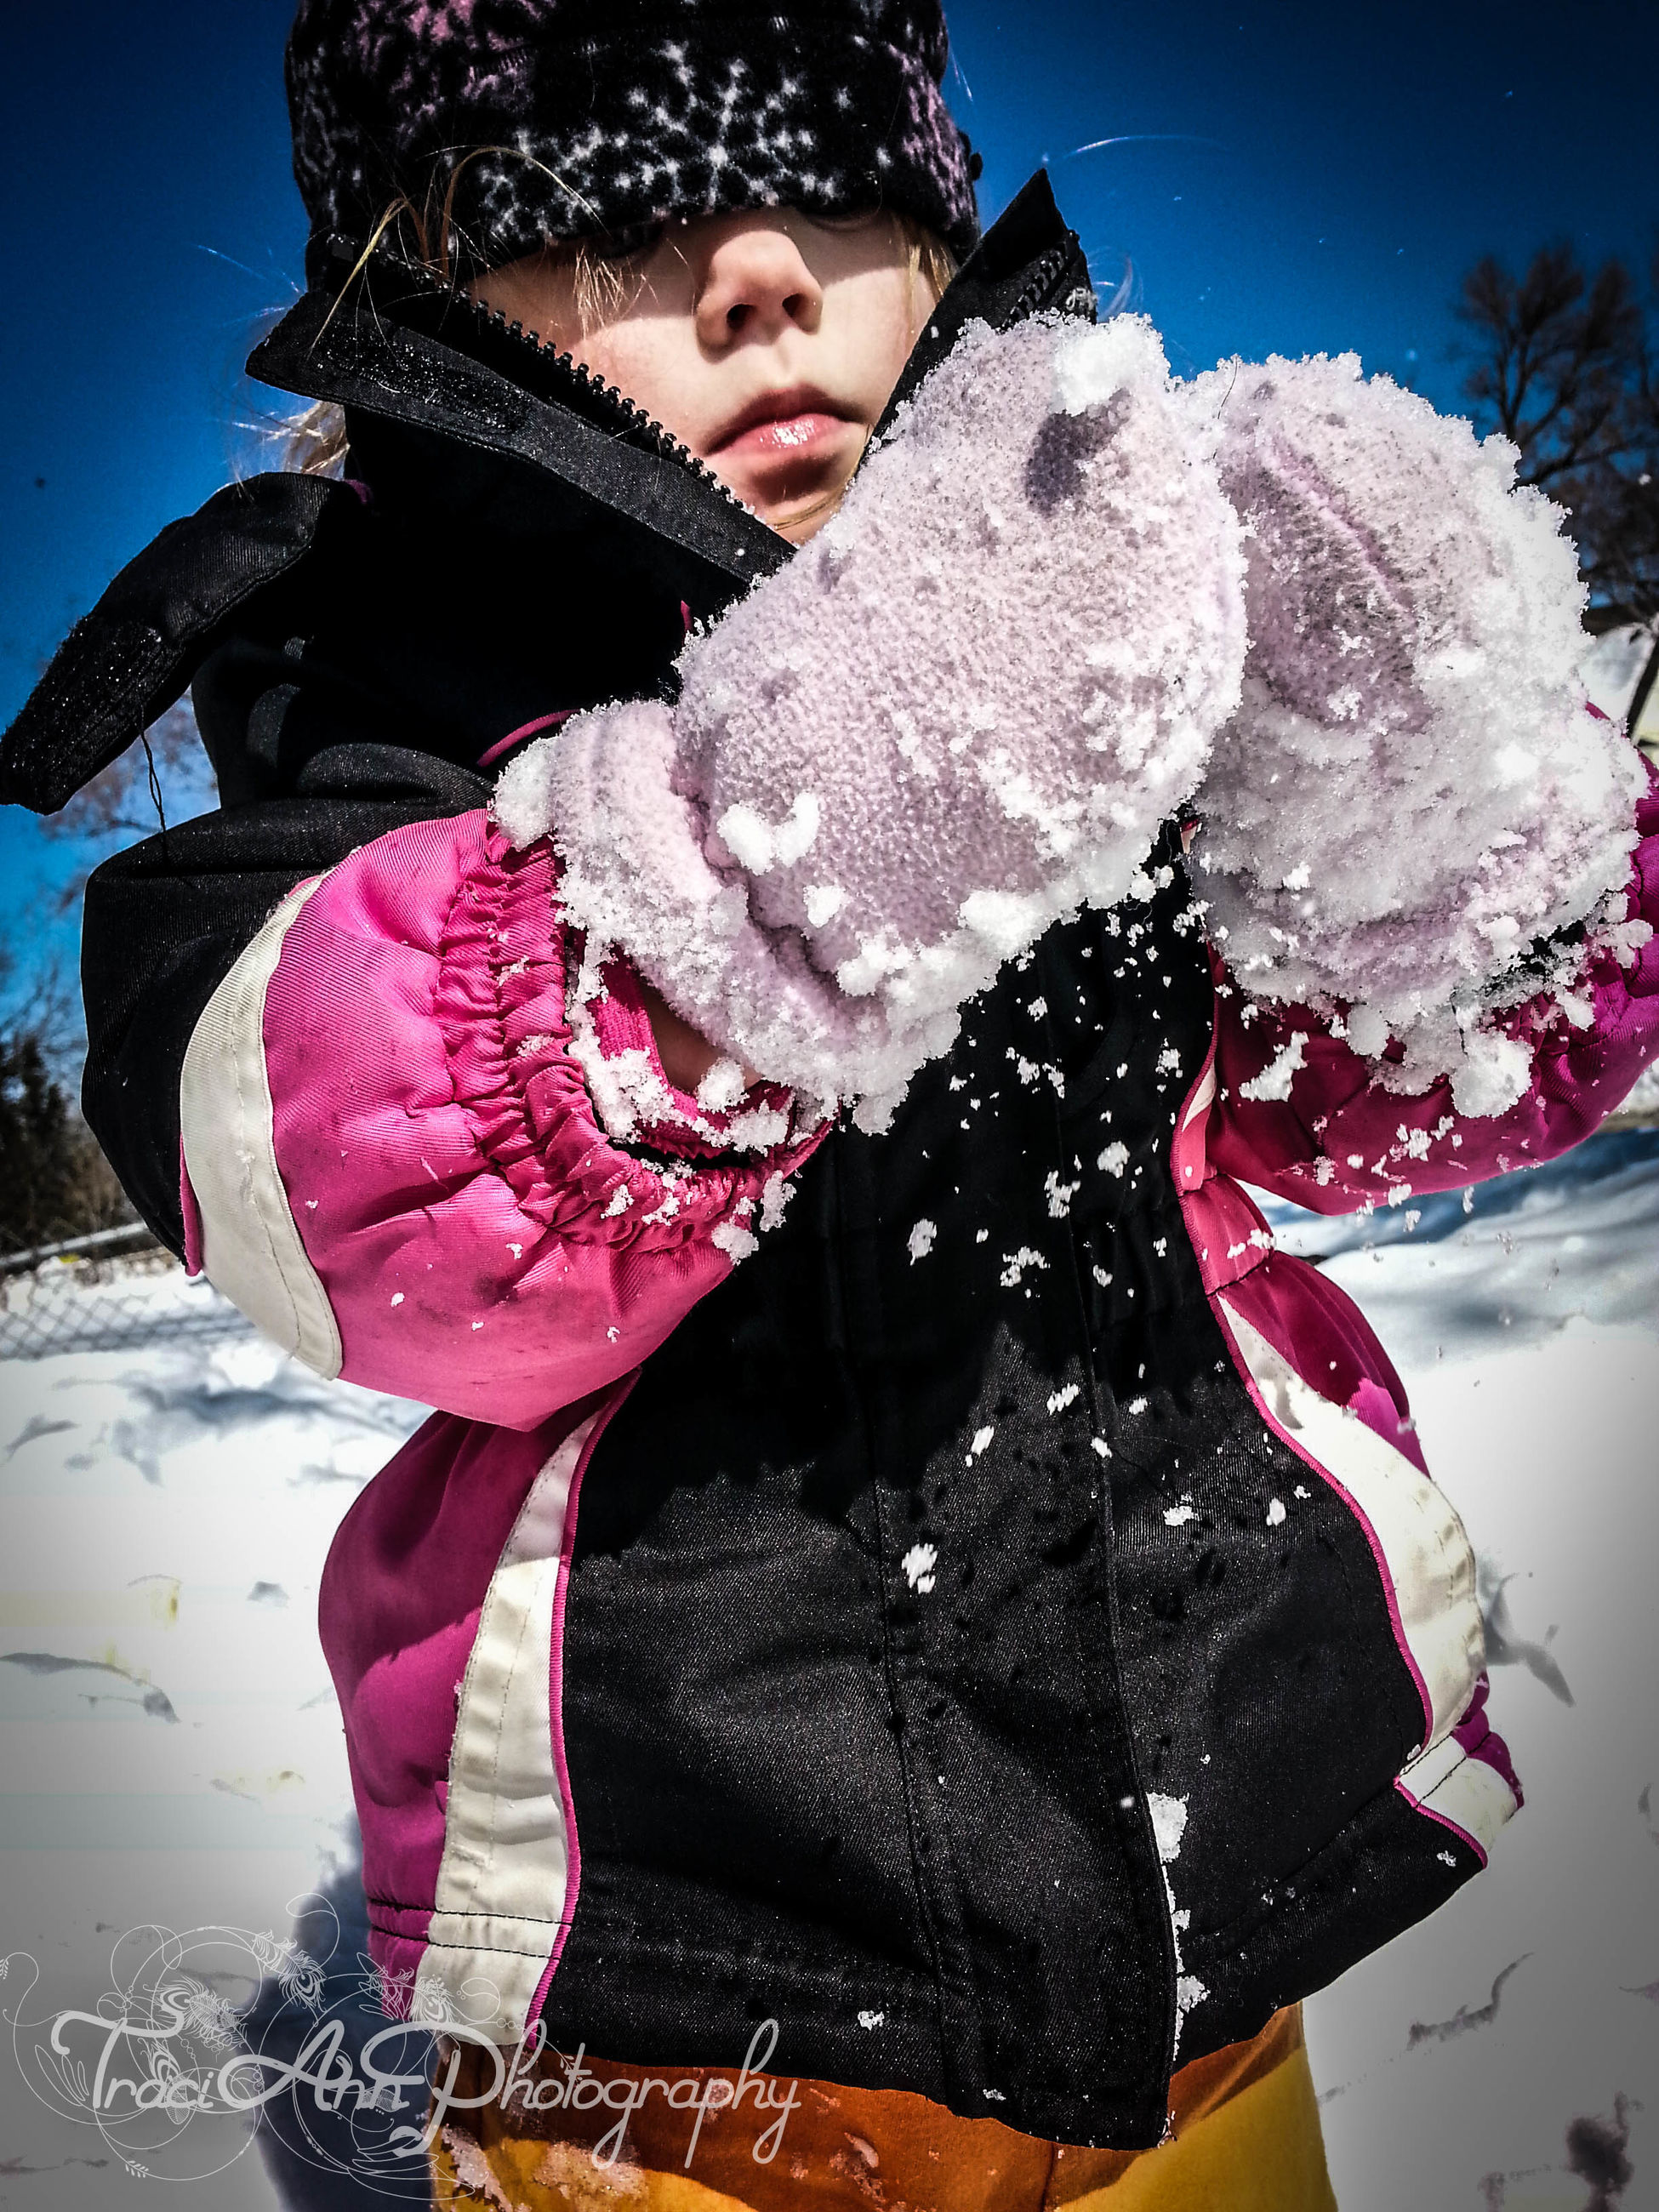 winter, snow, cold temperature, season, person, lifestyles, front view, full length, leisure activity, warm clothing, casual clothing, looking at camera, weather, standing, holding, portrait, young adult, three quarter length